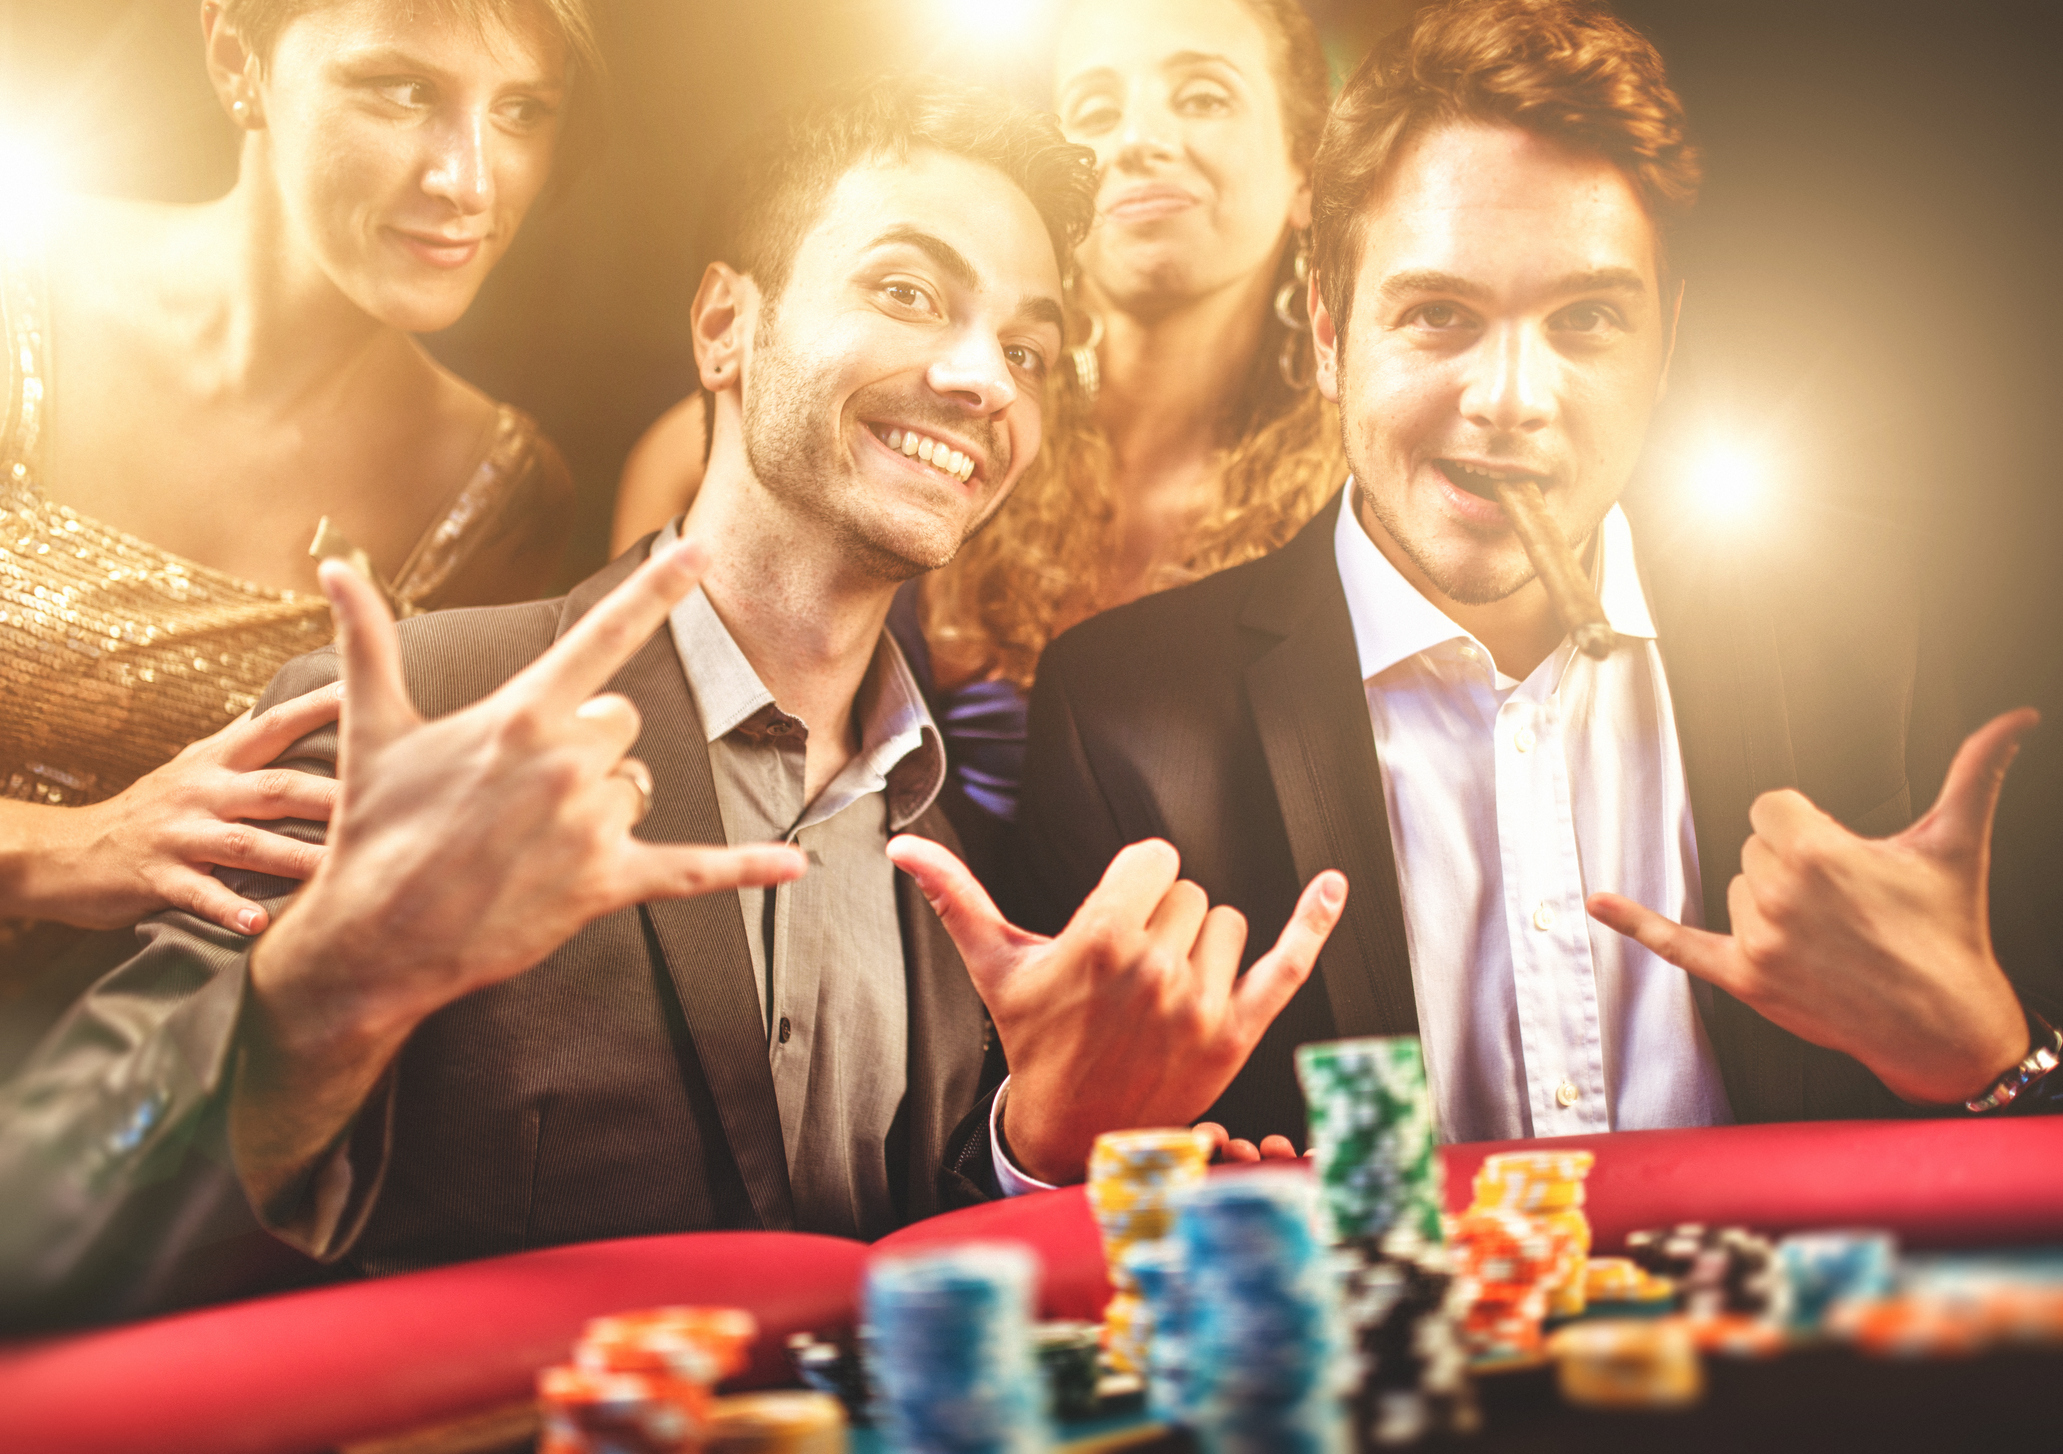 Poker is a traditional casino game that's loved by young and old alike.